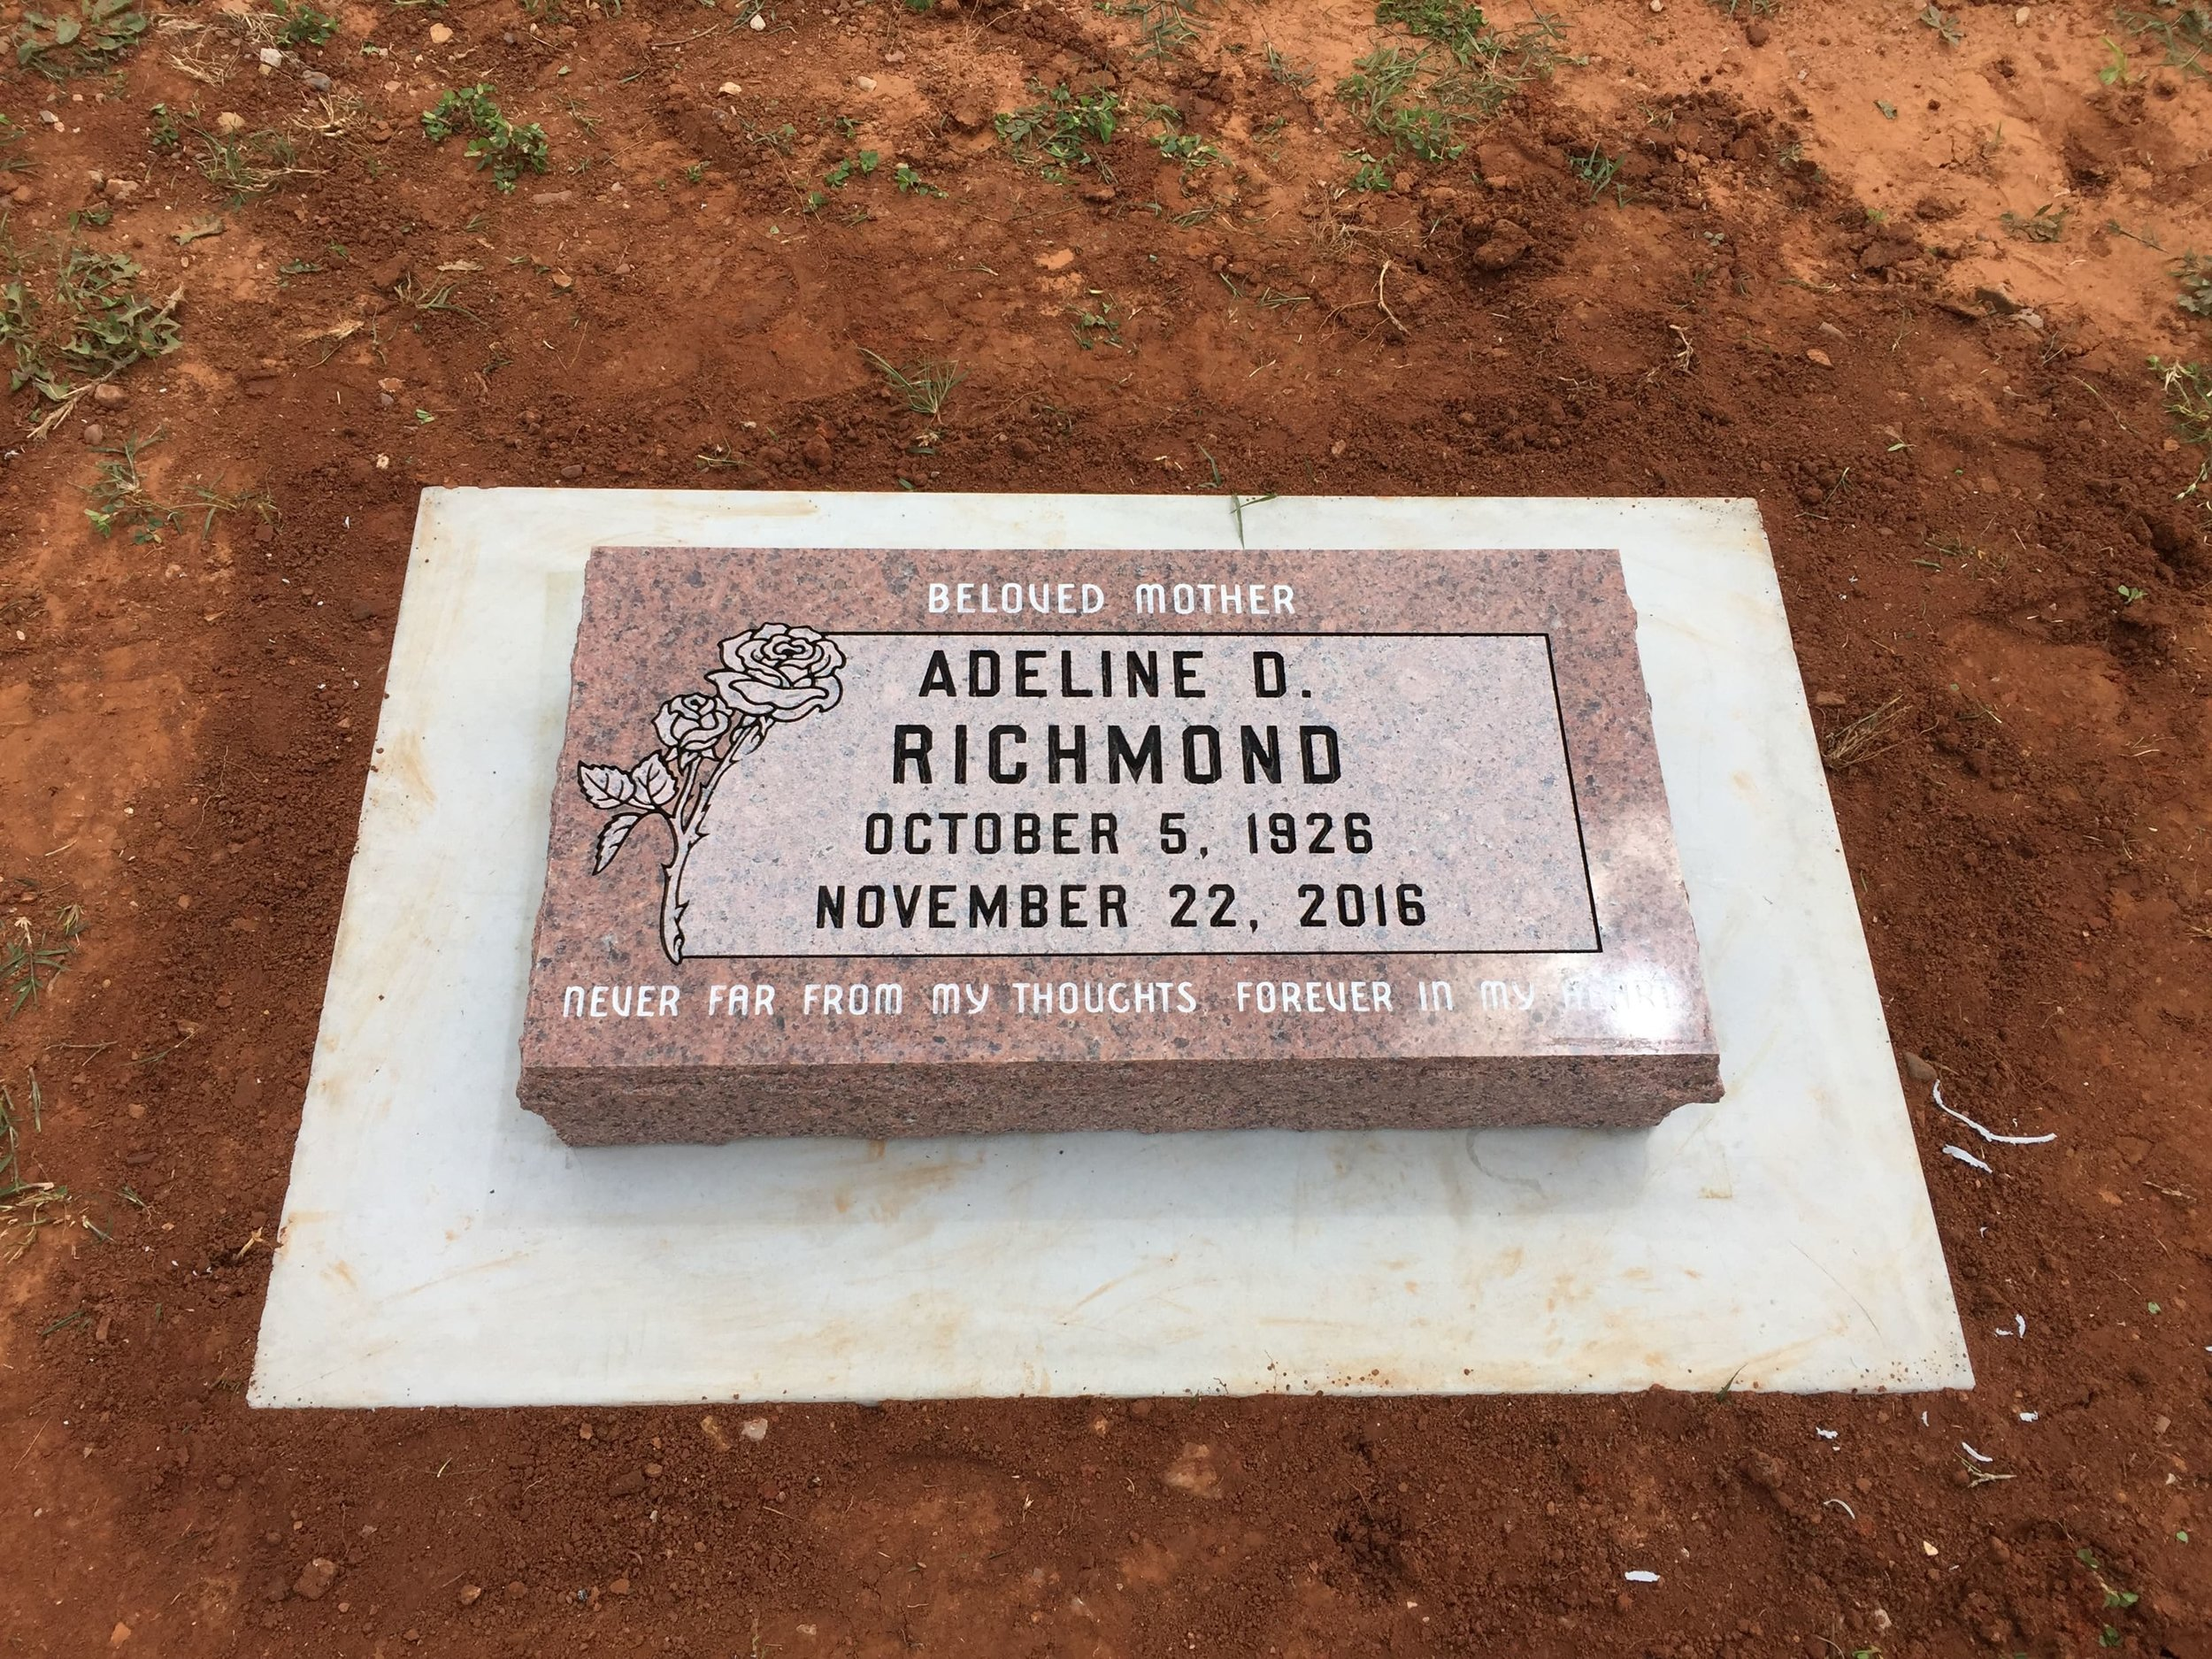 14. Trice Hill Cemetery, Forest Park Oklahoma